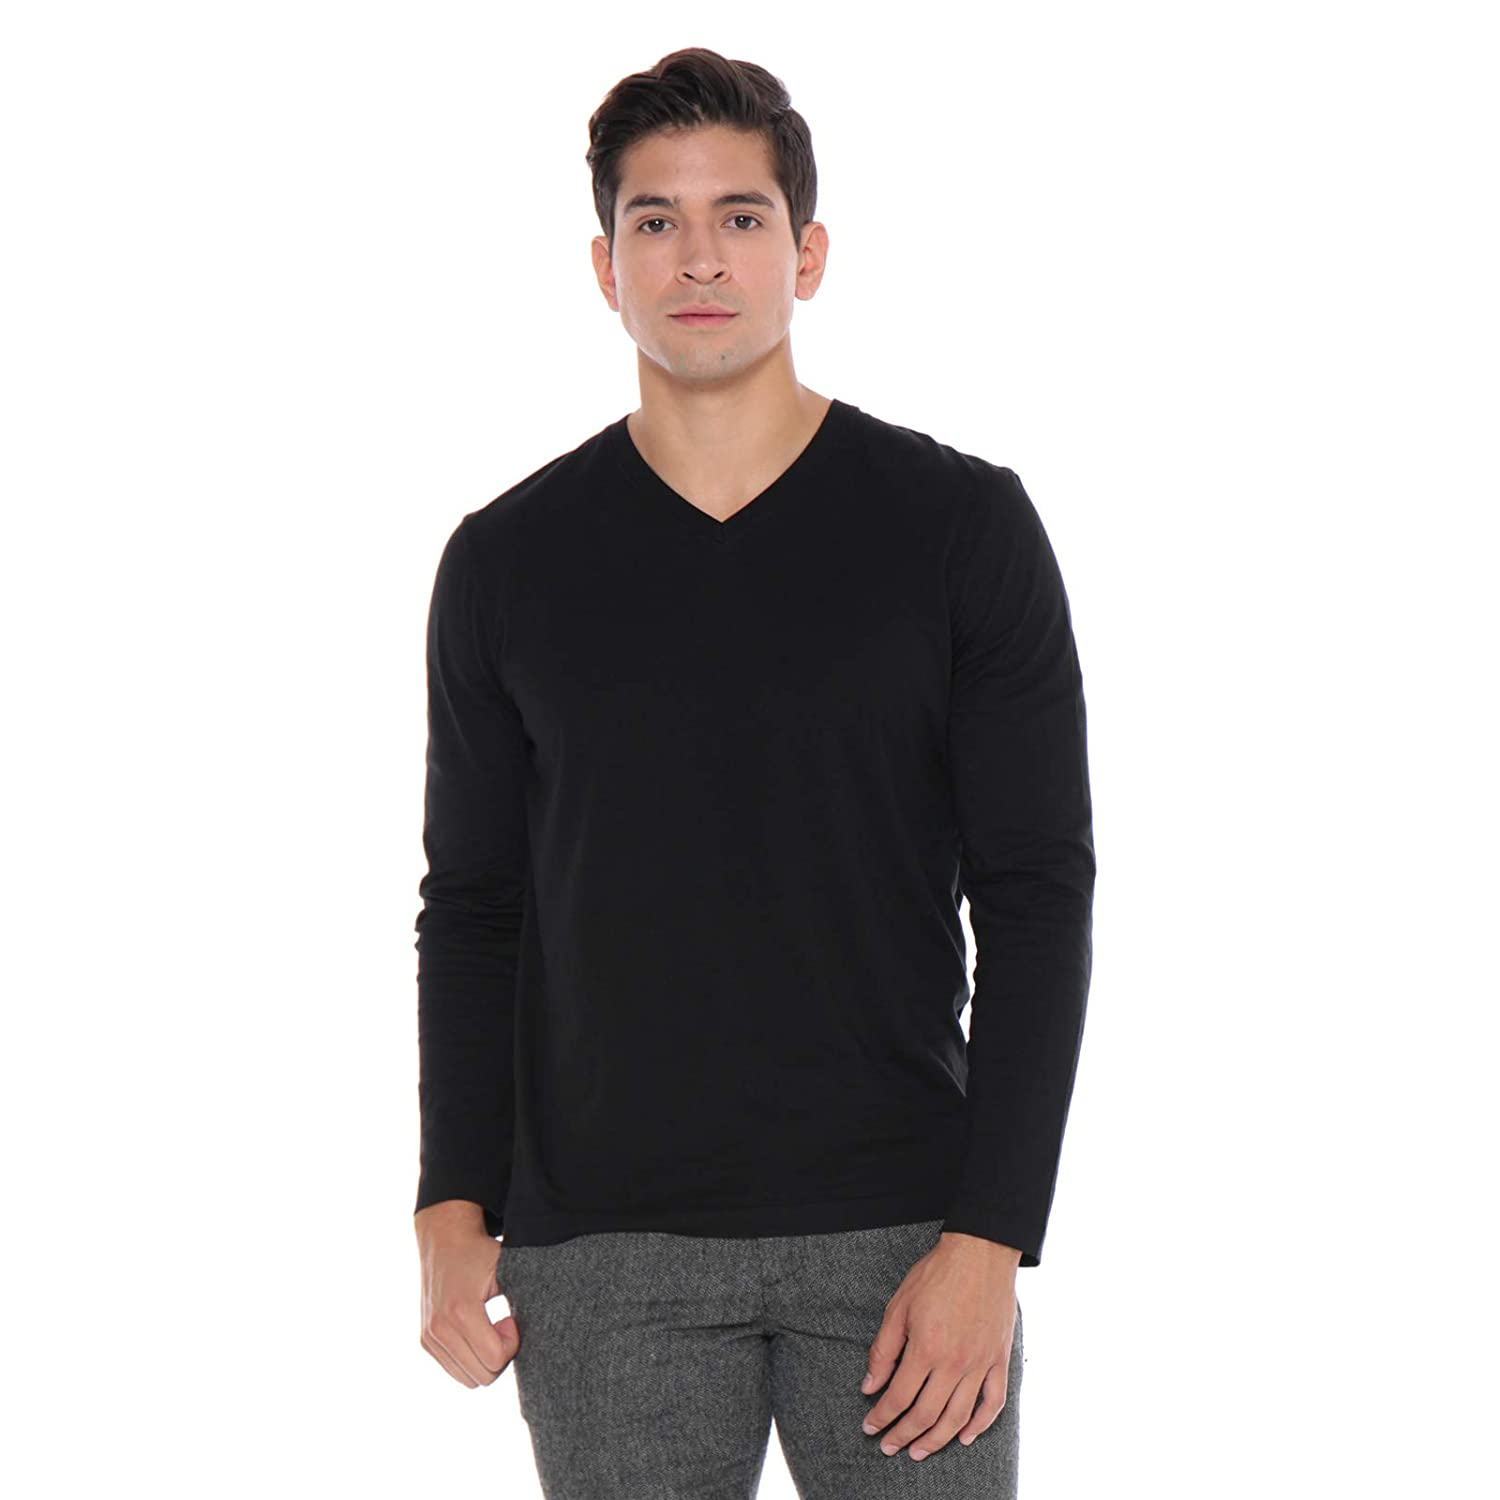 Made in USA Mens Designer T-Shirt Lightweight Semi Fit Long Sleeve V-Neck 100/% Organic Cotton Pre-Shrunk Embroidered